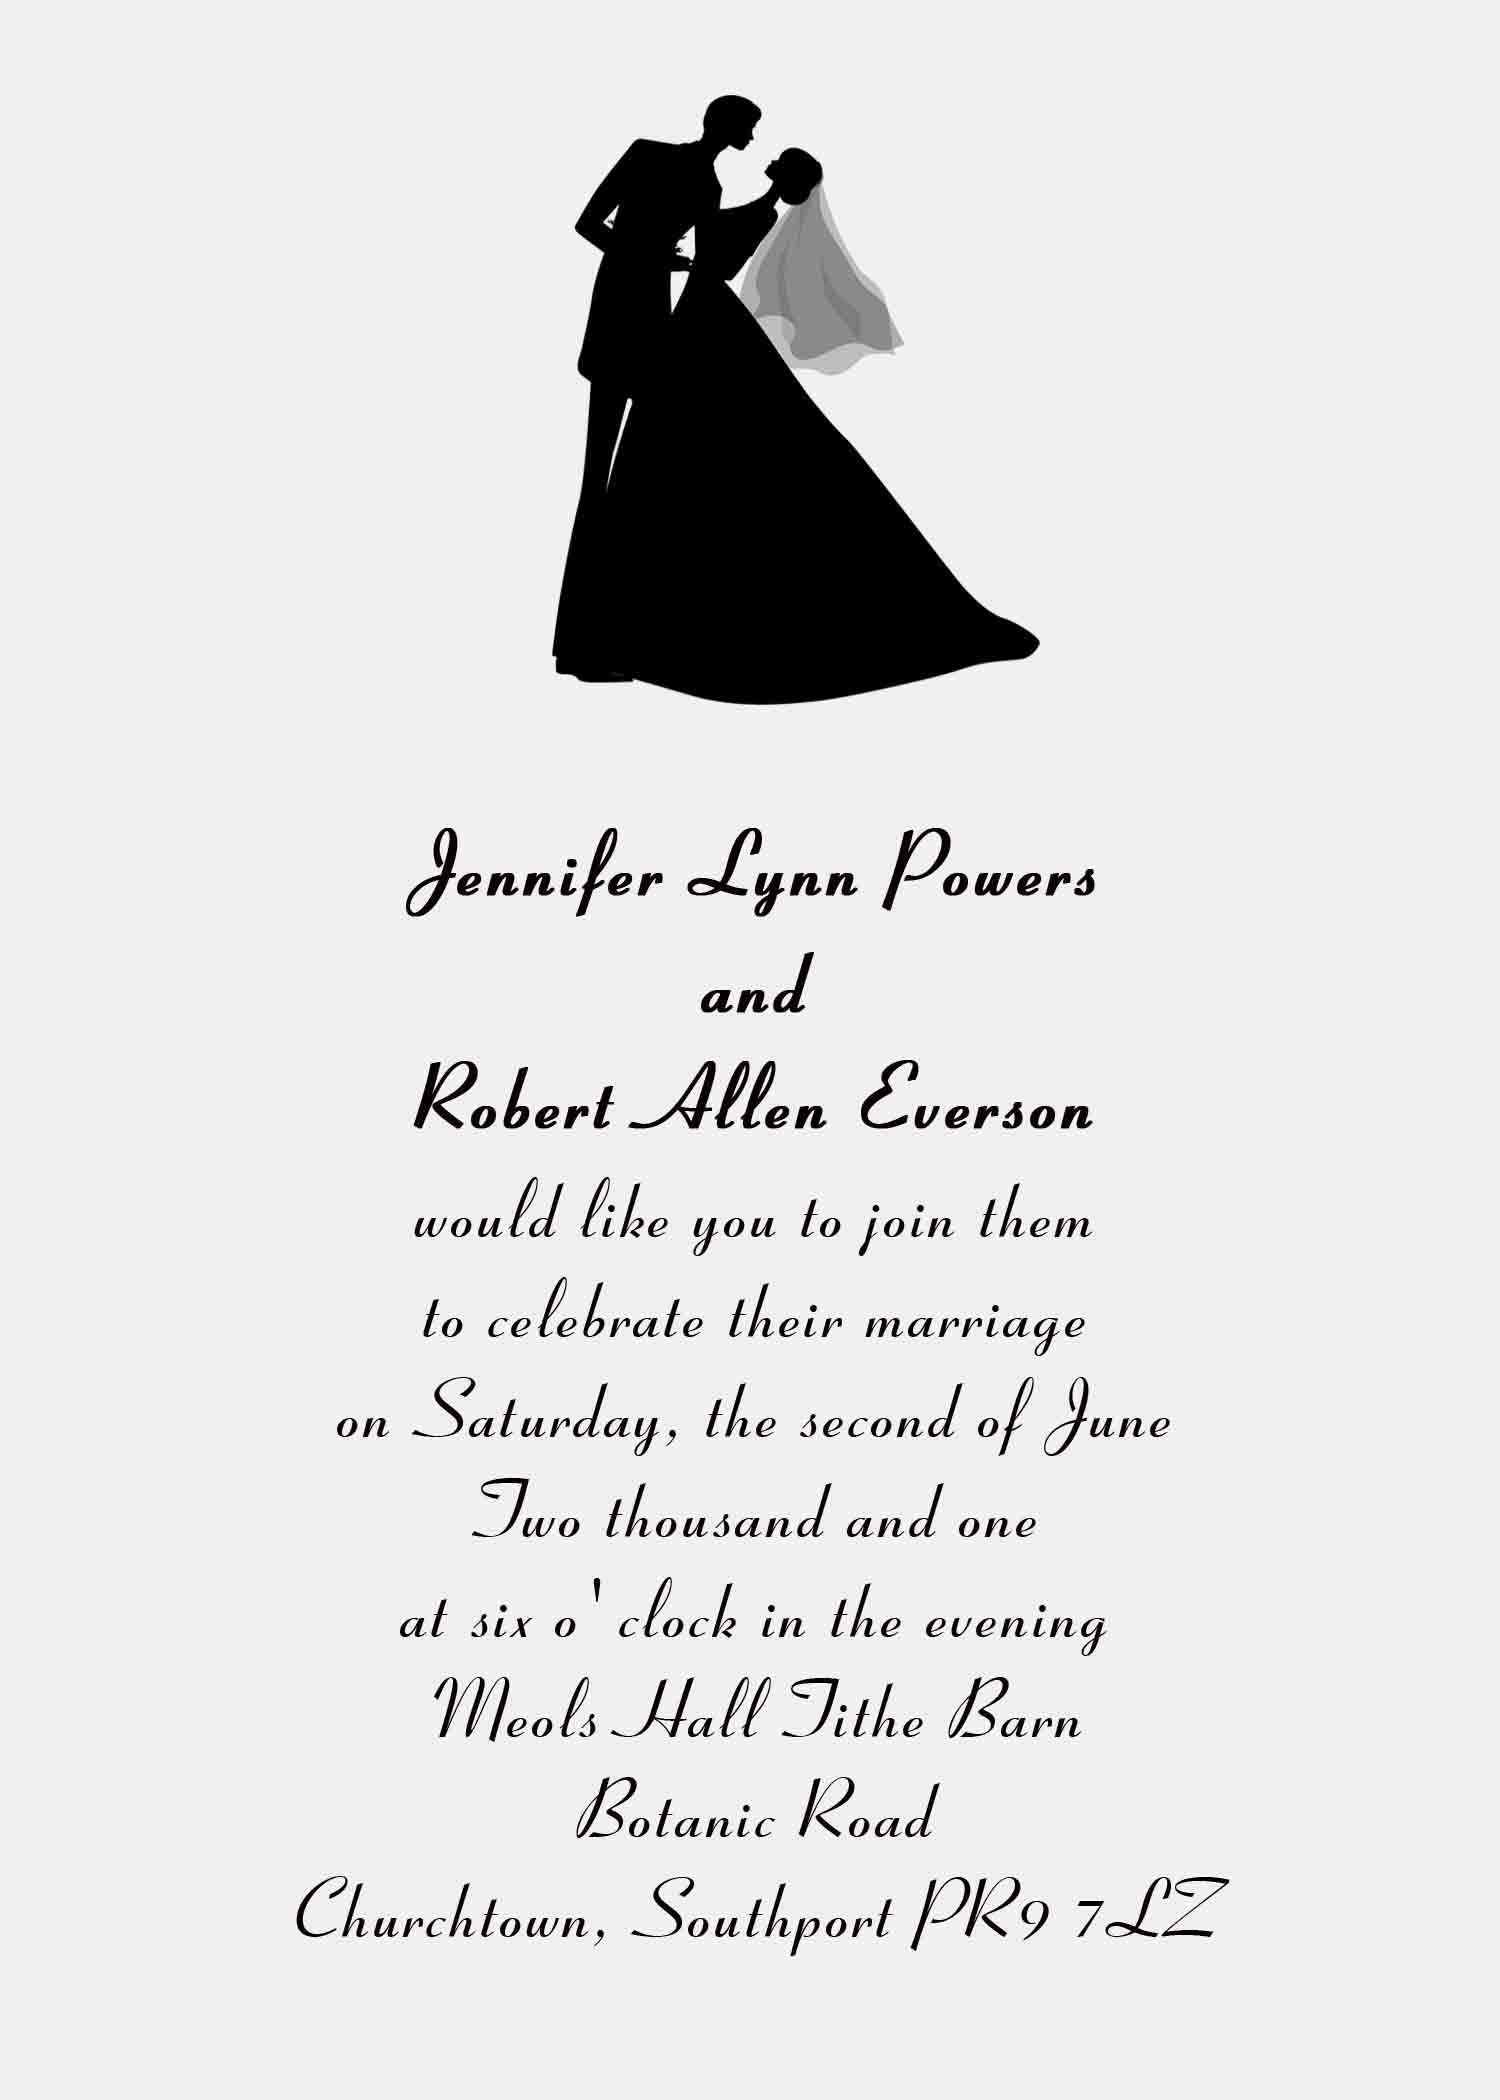 Bridal Wedding Card Quotes Invitations Silhouette Unique Invitation Wording Cards